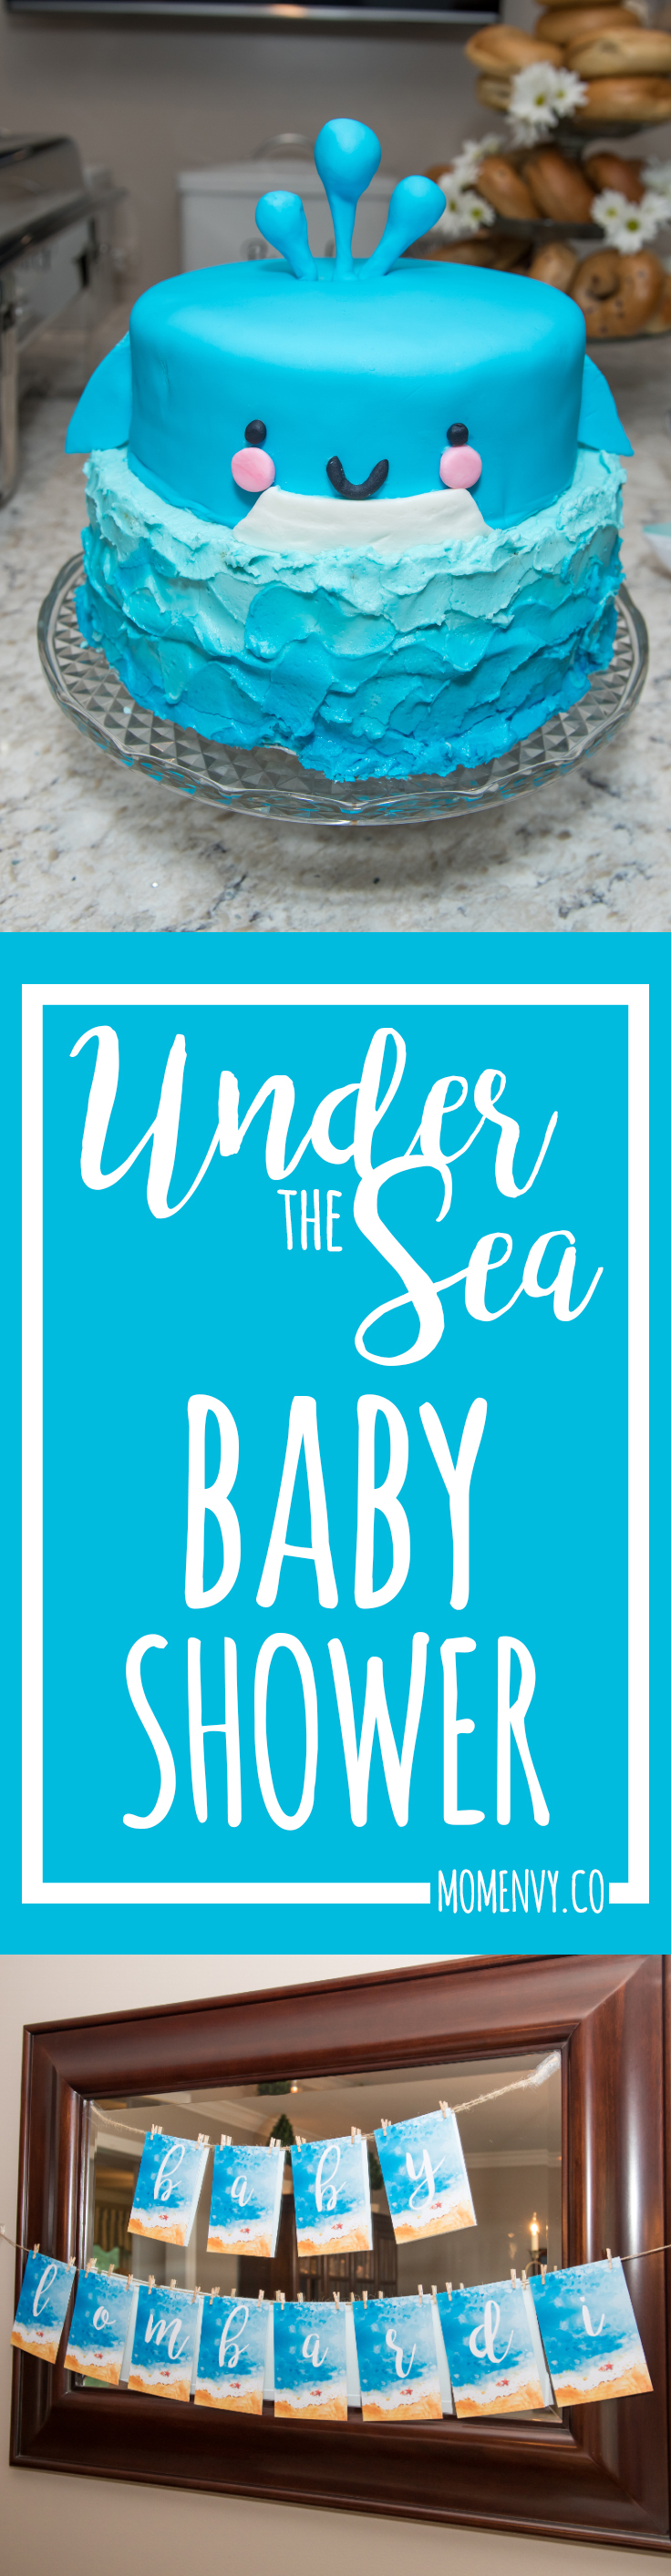 Under the Sea Baby Shower. Check out the details of this beach themed baby shower. Lots of beachy shower ideas. Beach themed party favors. Bhower recipe ideas. Easy brunch ideas. Whale cake. from https://momenvy.co